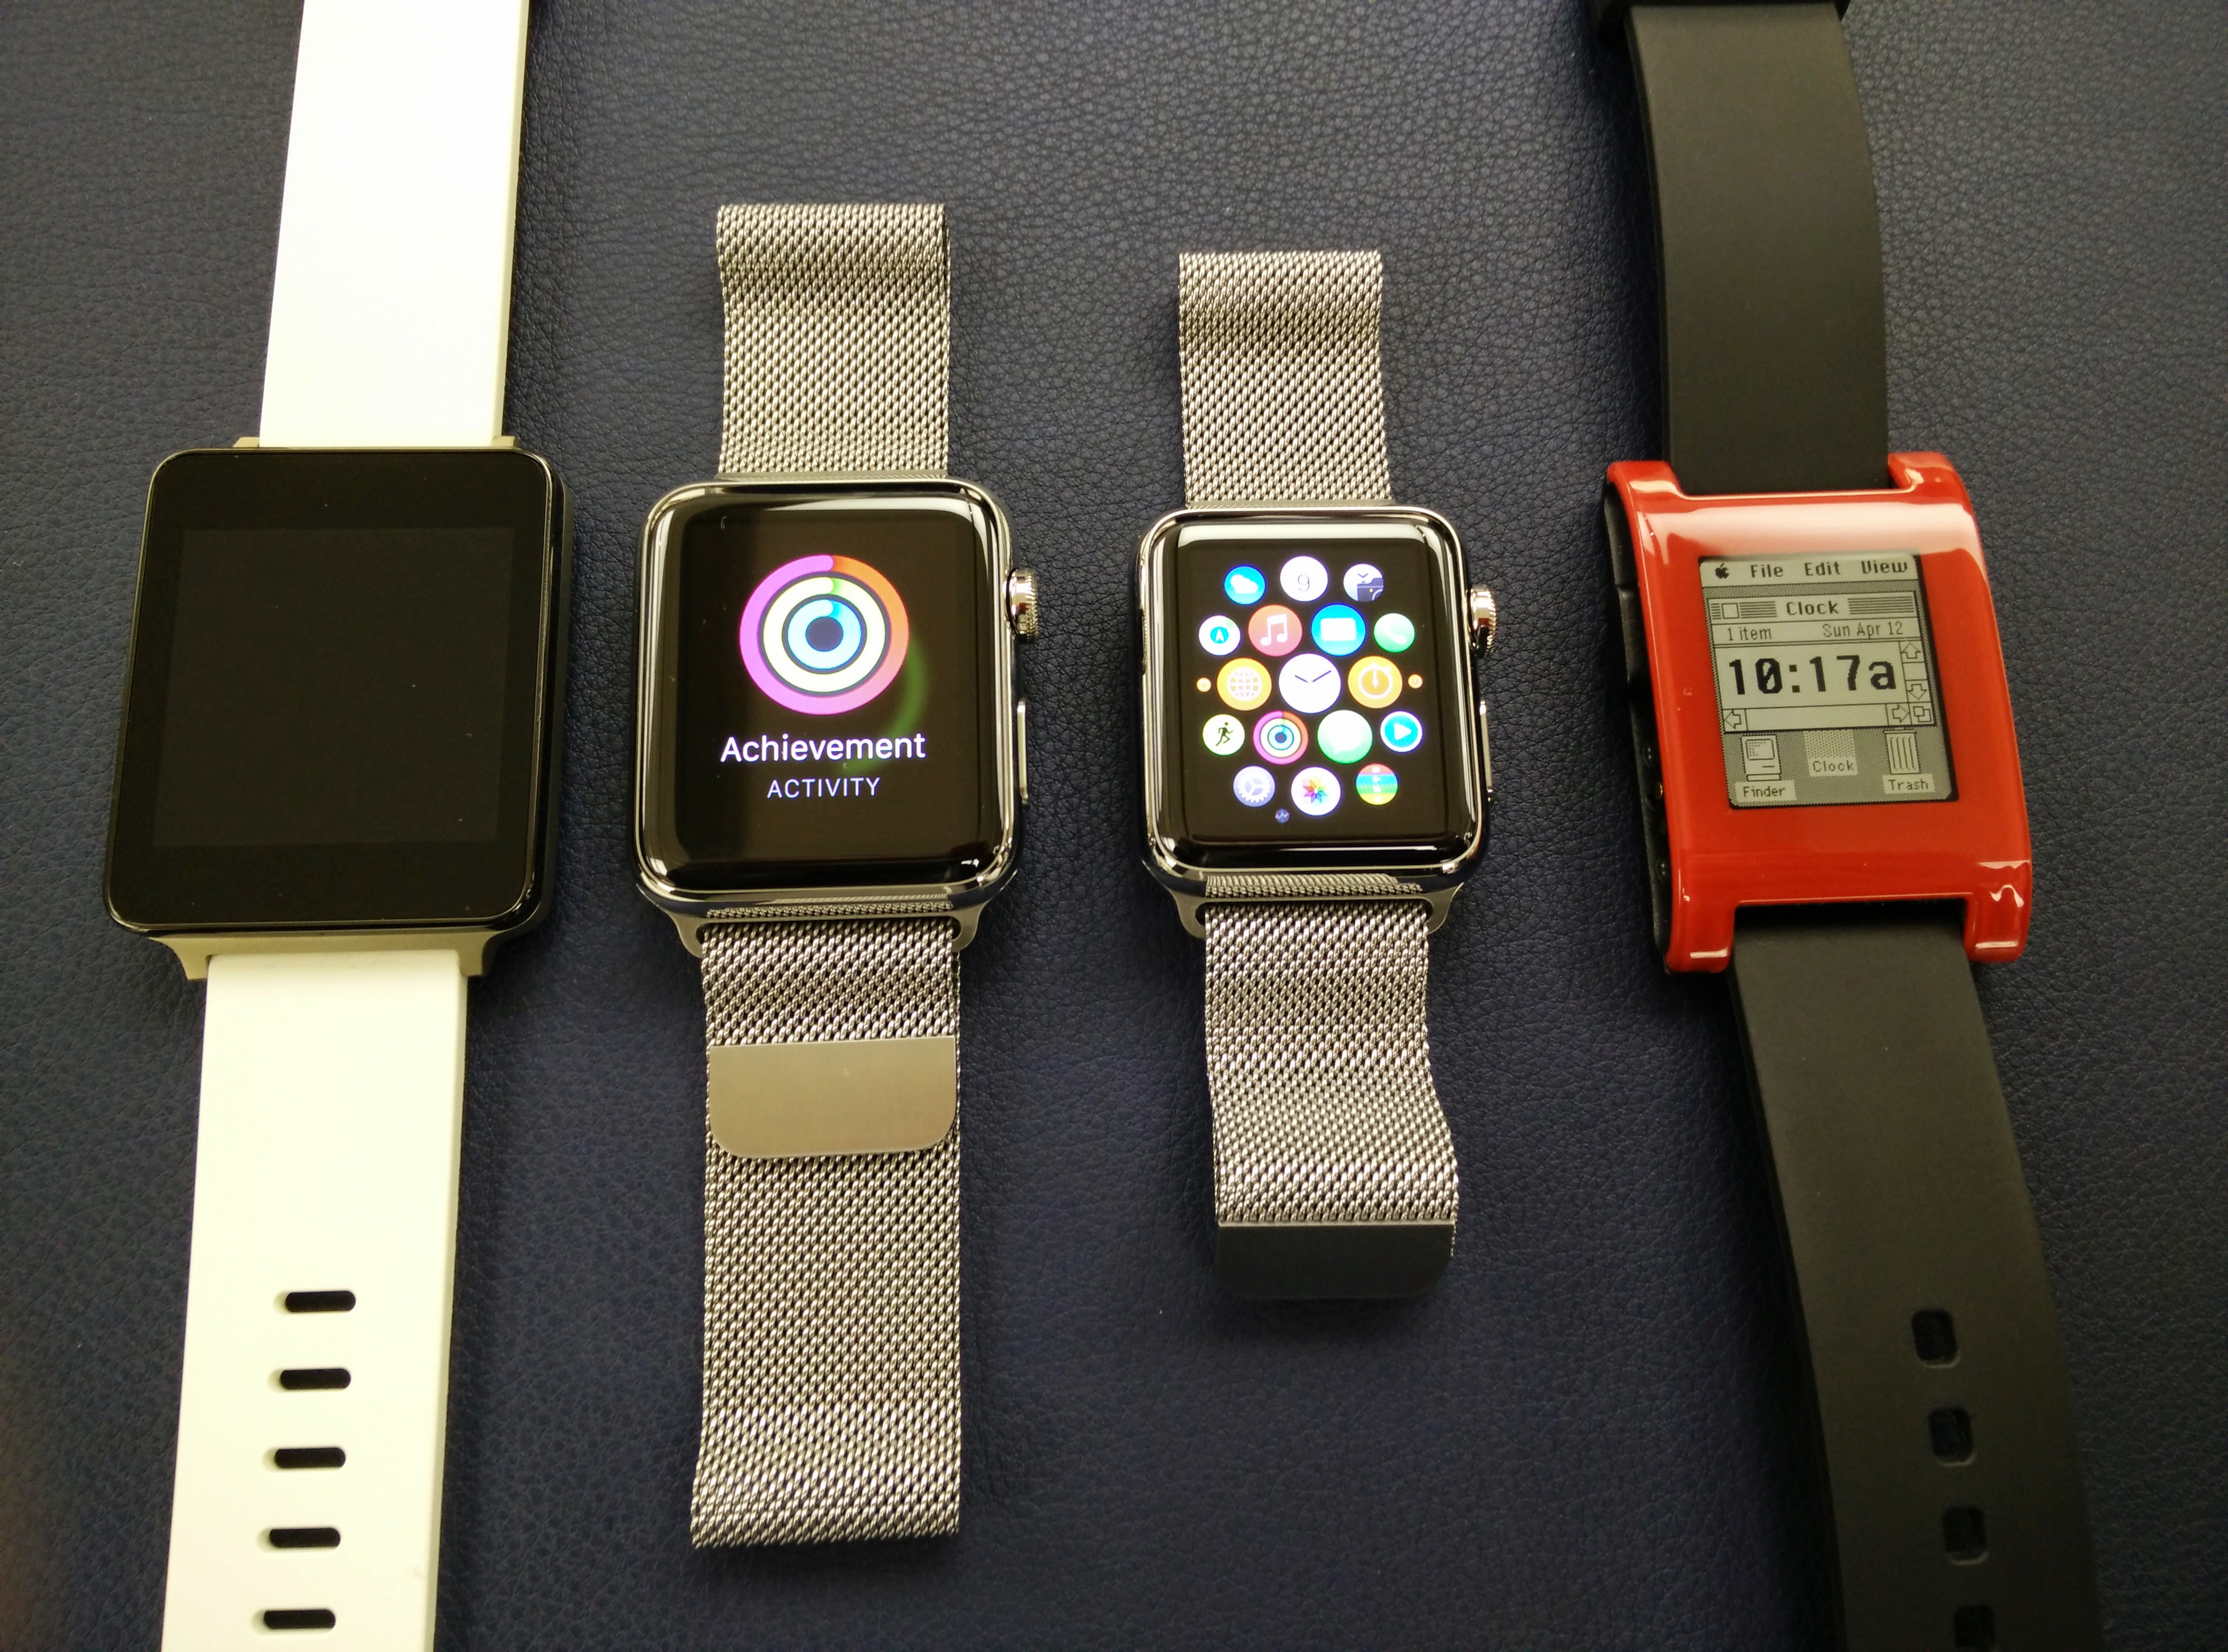 Apple Watches Flanked by Android Wear and Pebble